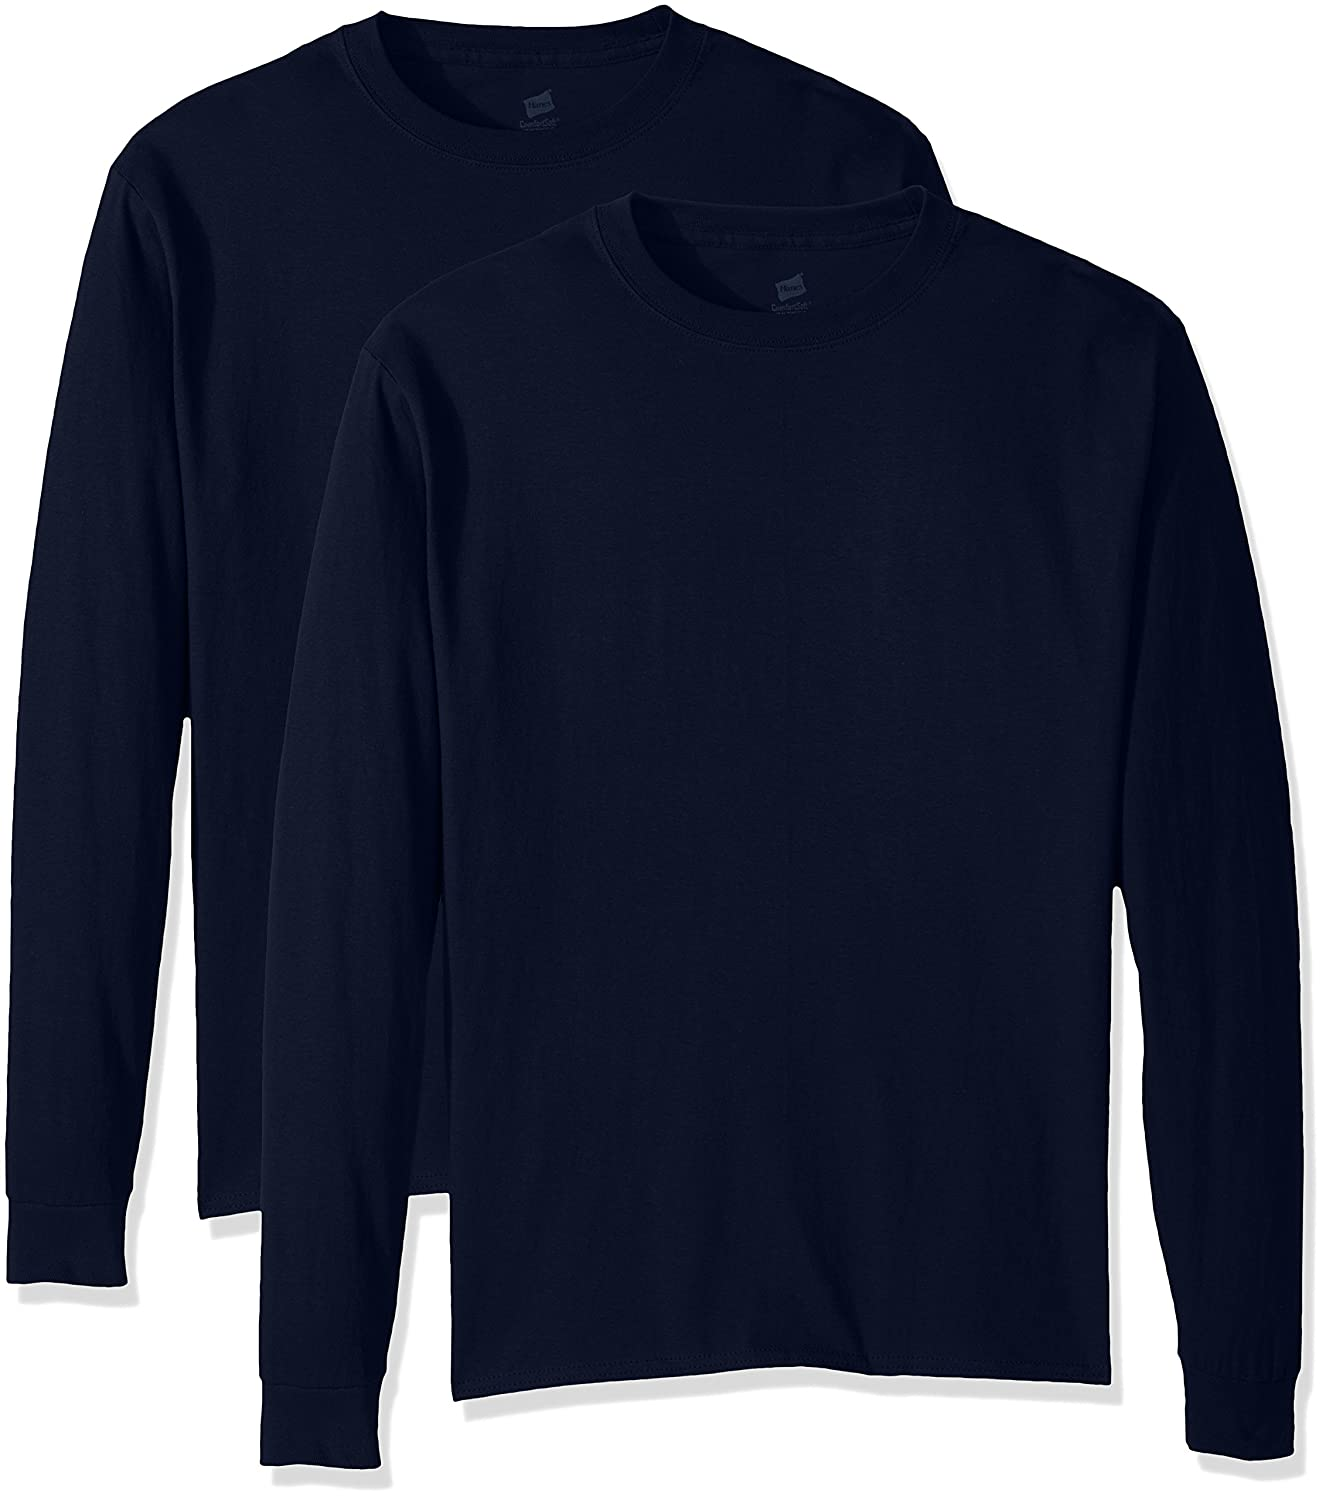 Hanes Men's ComfortSoft Long-Sleeve T-Shirt (Pack of 2) Hanes Branded Printwear O5288